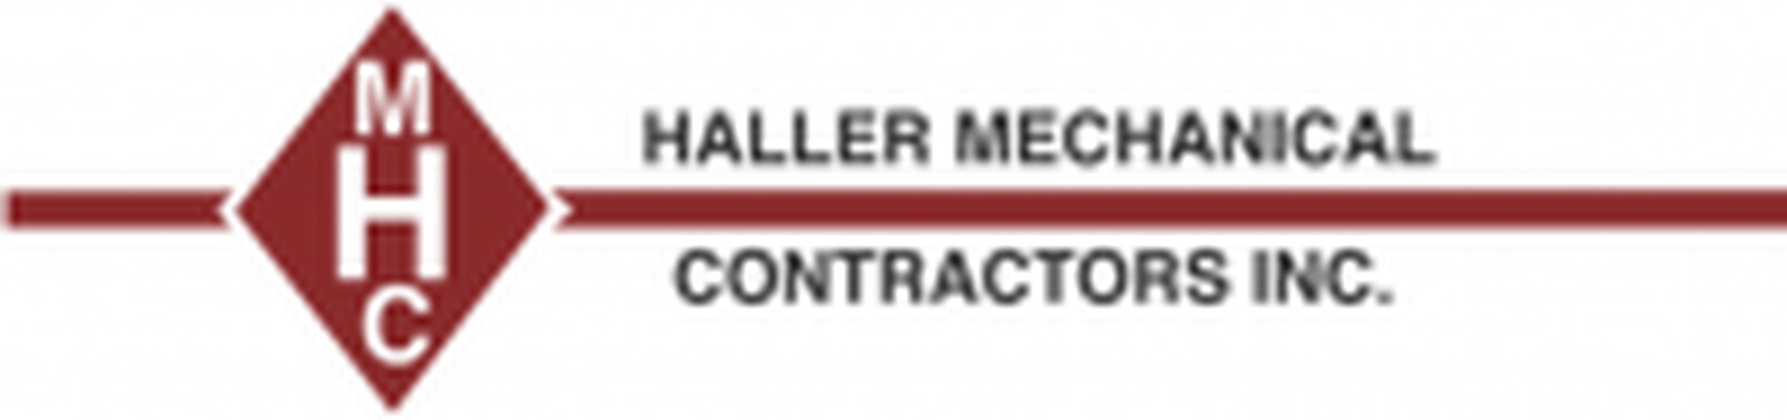 Haller Mechanical Contractors Inc./Spada Sheet Metal Inc.